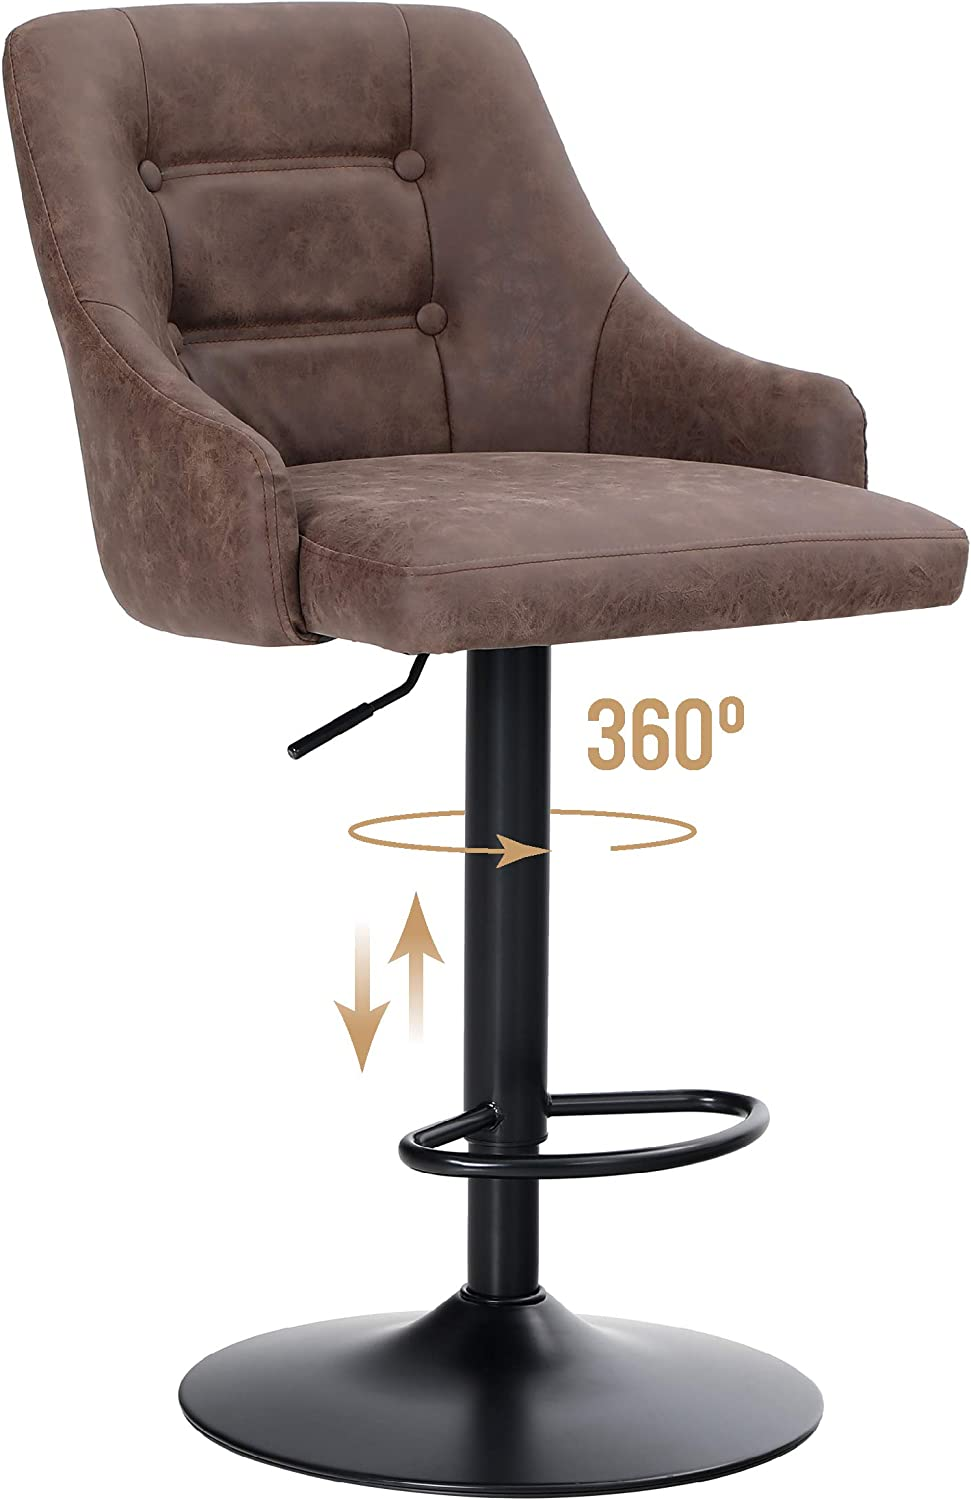 ALPHA HOME Swivel Bar Stool Ba Airlift Counter Bargain sale Adjustable Our shop OFFers the best service Height